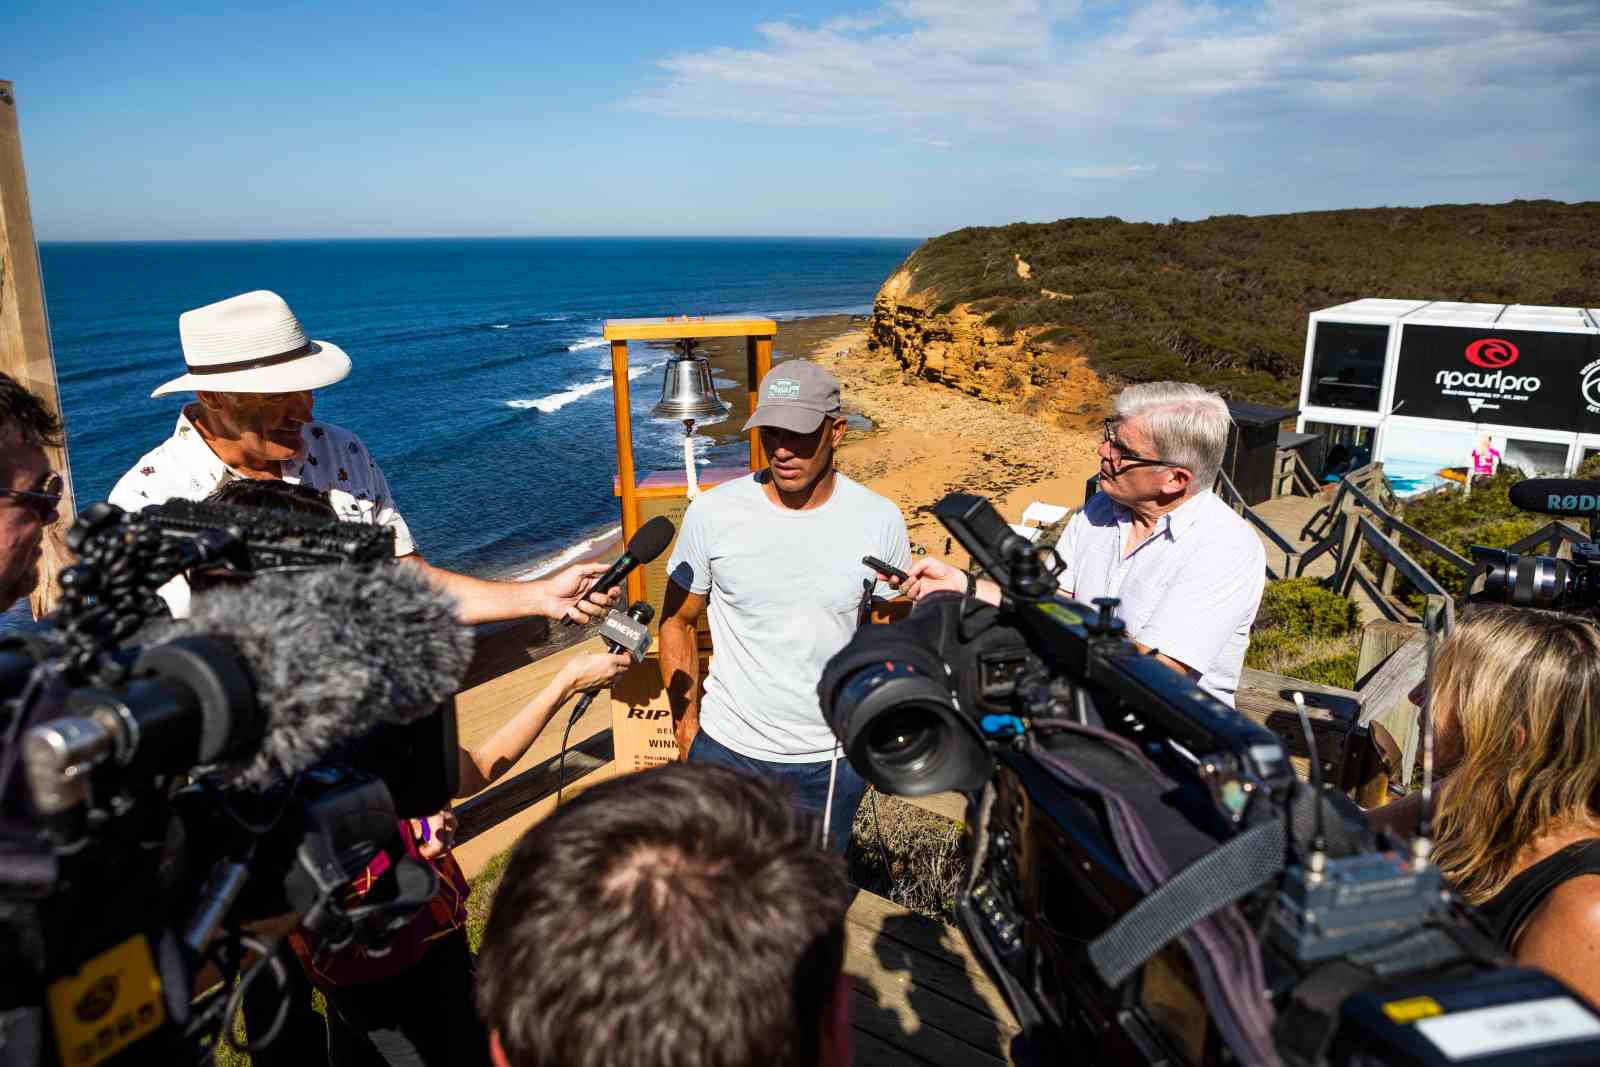 11X World Champion Kelly Slater of the USA is interviewed at the 2019 Rip Curl Pro Bells Beach press session at Bells Beach on April 16, 2019 in Victoria, Australia.